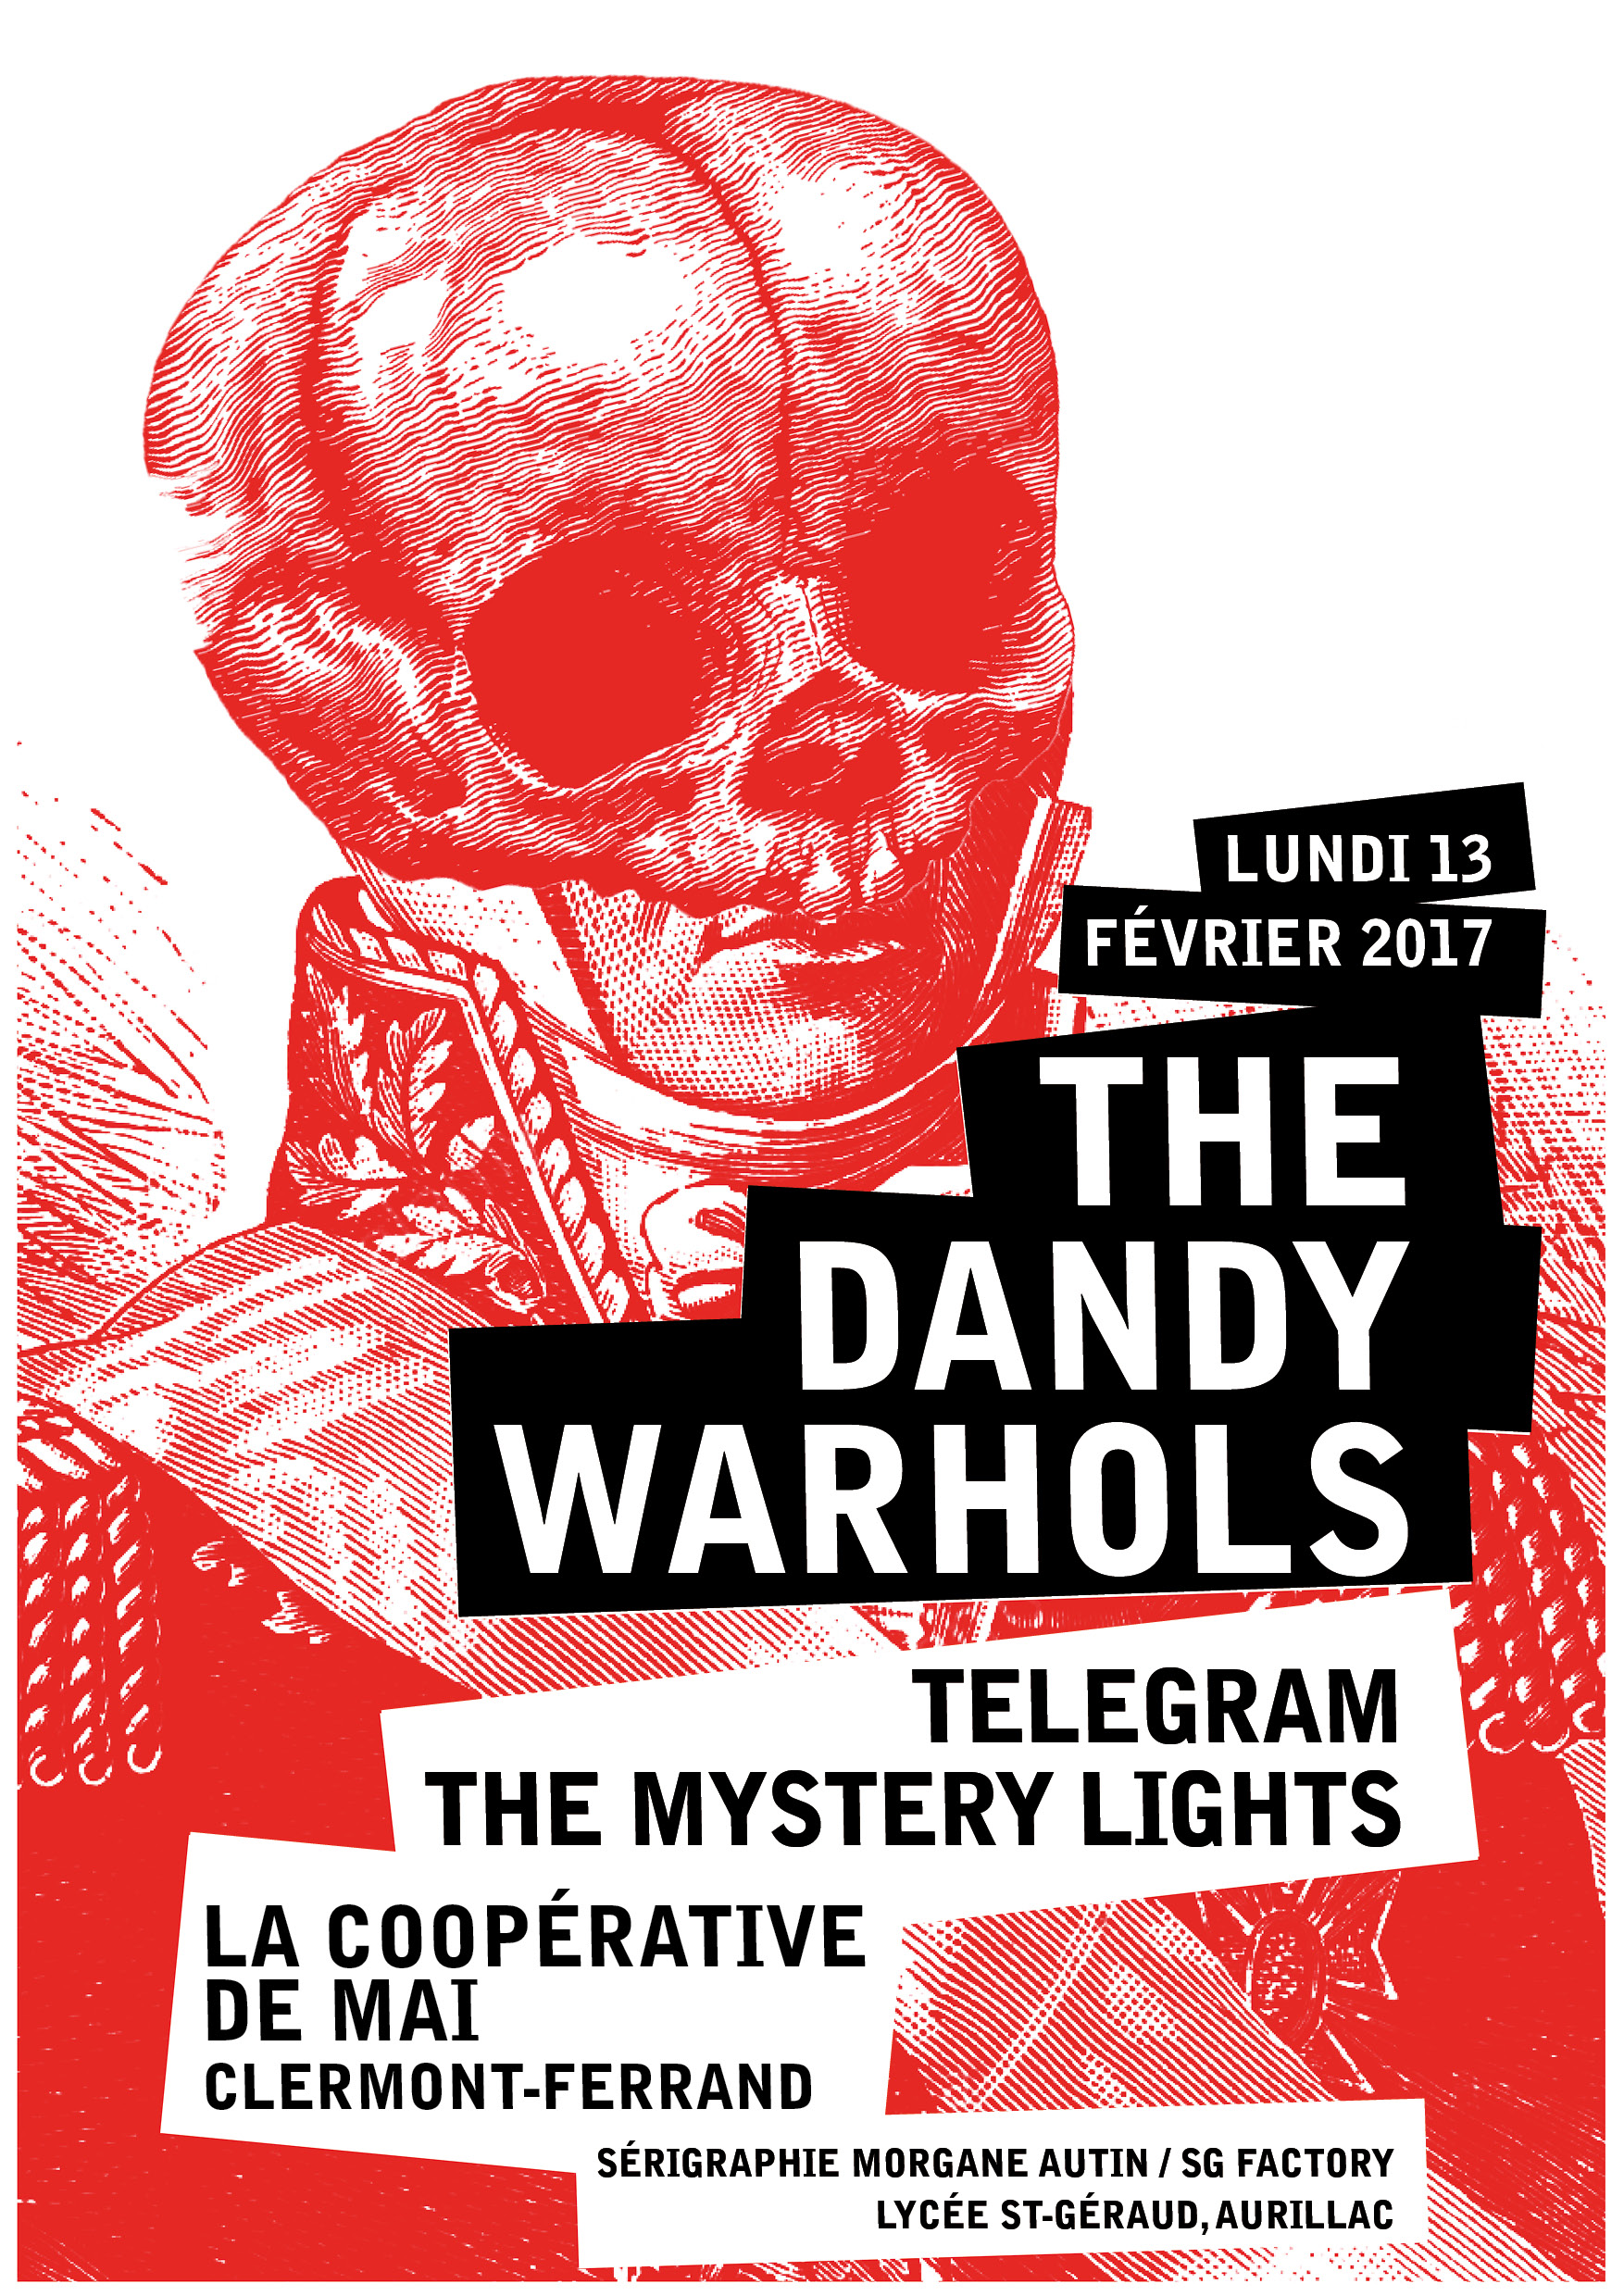 Affiche The Dandy Warhols, Telegram & The Mystery Lights @ La Coopérative de Mai